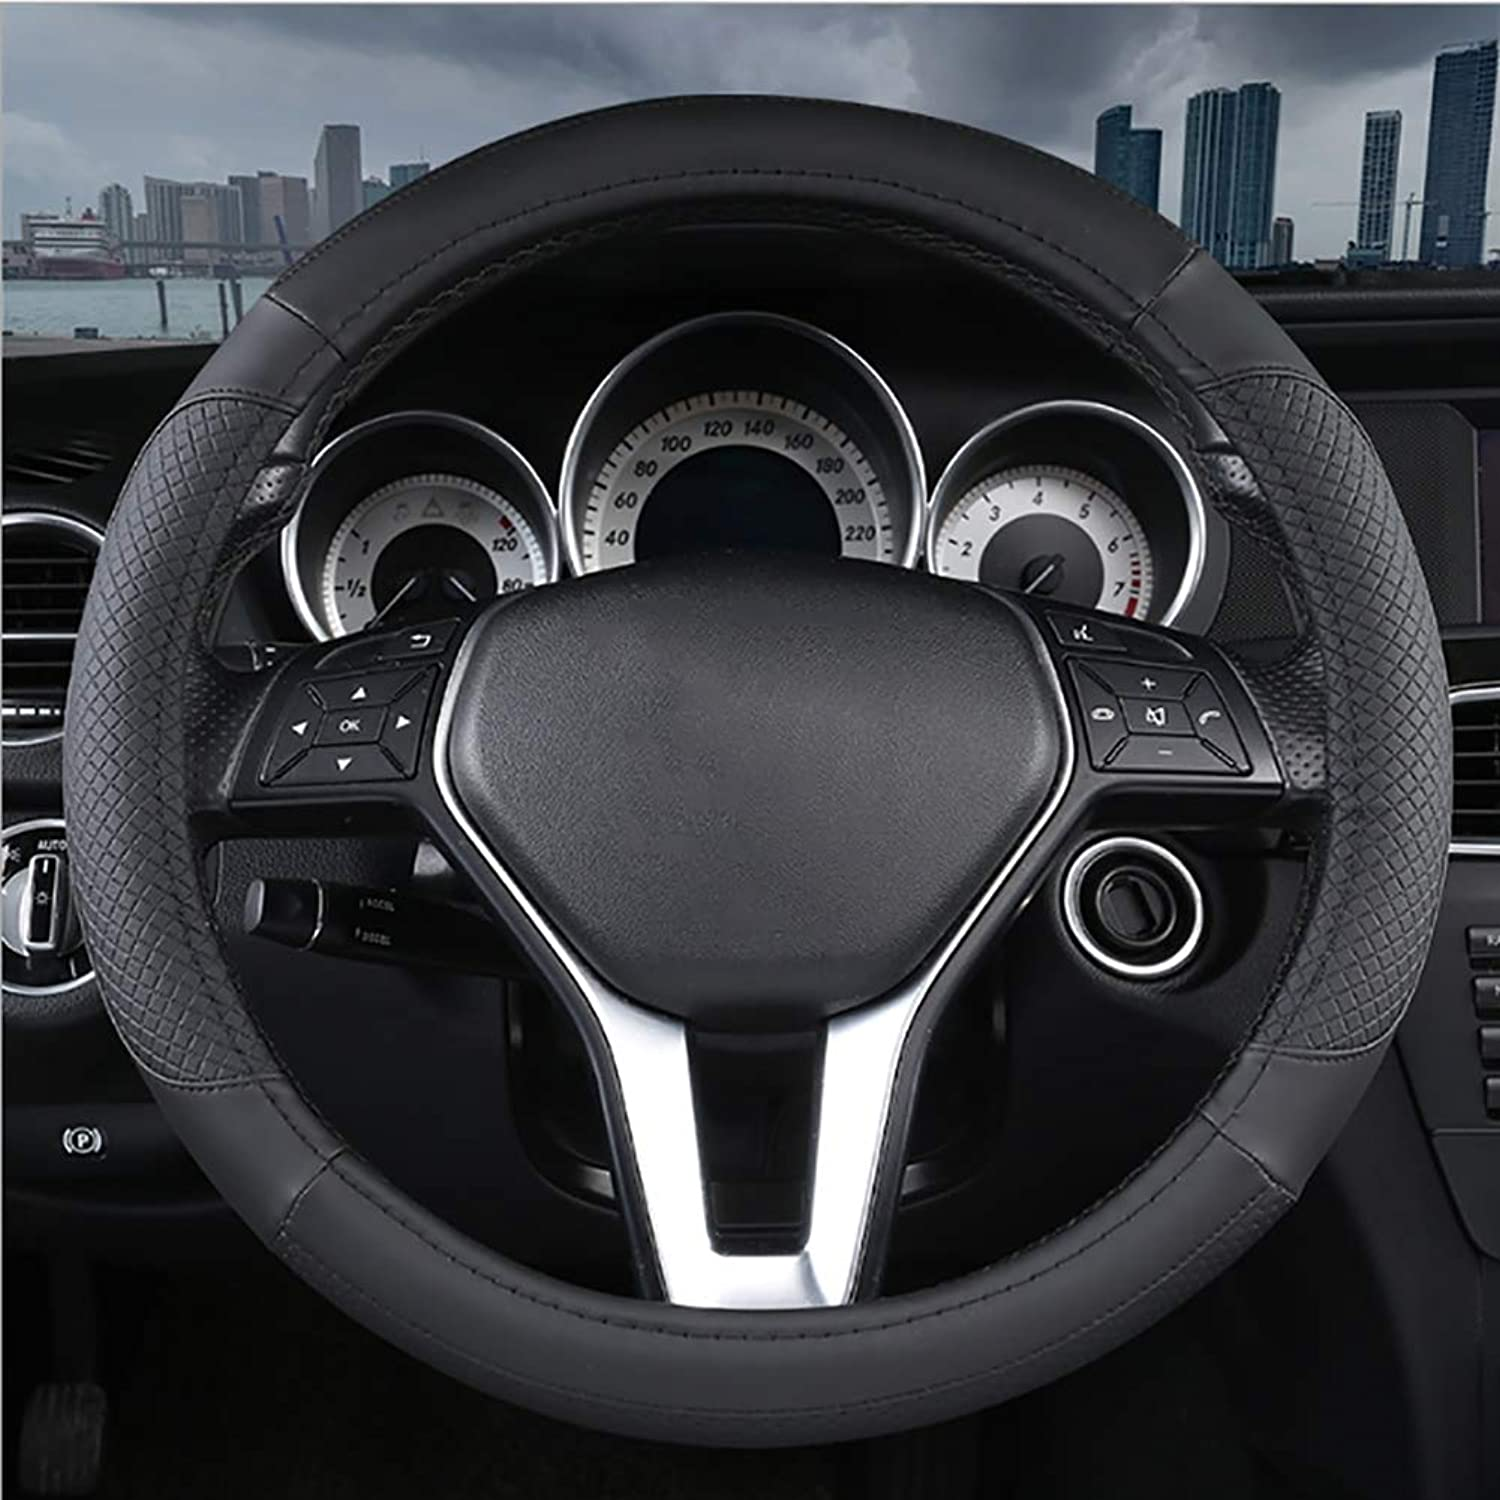 Car Steering Wheel Cover Leather, Comfortable Wear Resistant NonSlip Steering Cover, Diameter 3650 CM 14.219.7 Inch, for Truck, SUV, Cars, Four colors Optional